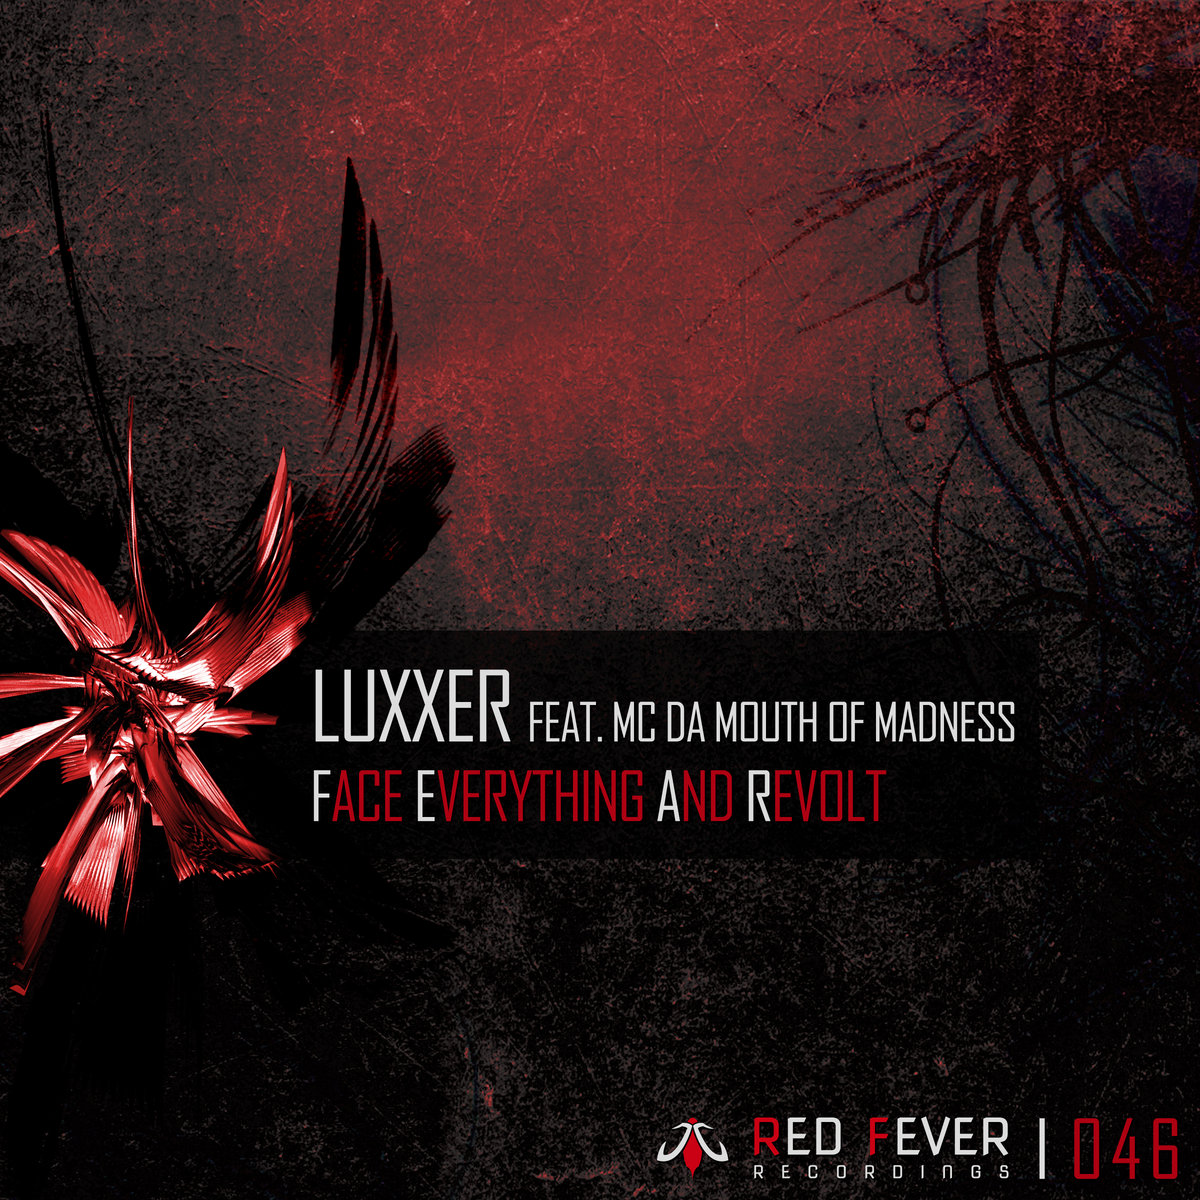 Luxxer - F.E.A.R. @ 'Face Everything And Revolt' album (electronic, da mouth of madness)